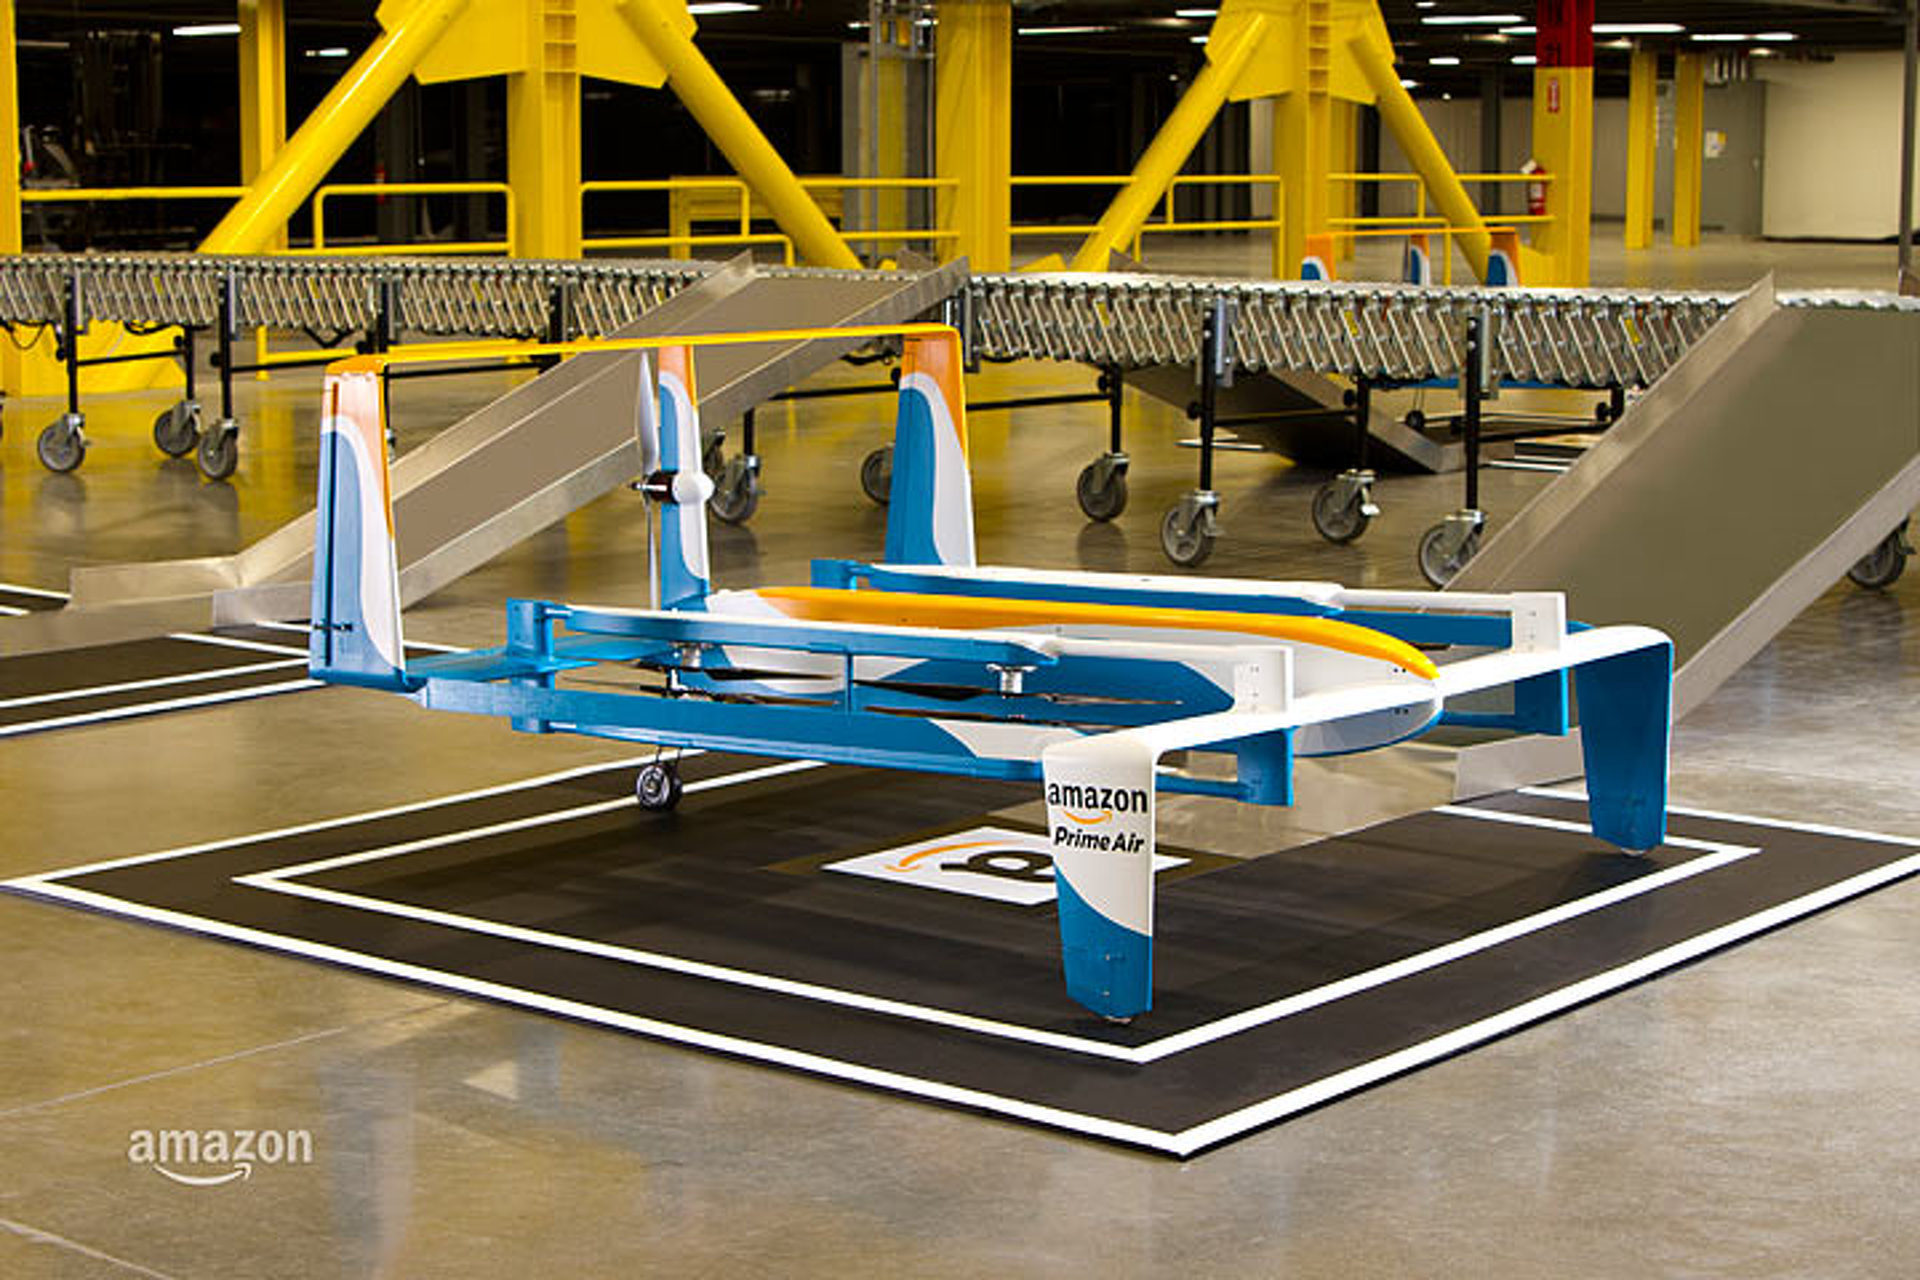 Watch Jeremy Clarkson Explain Amazon Prime Air